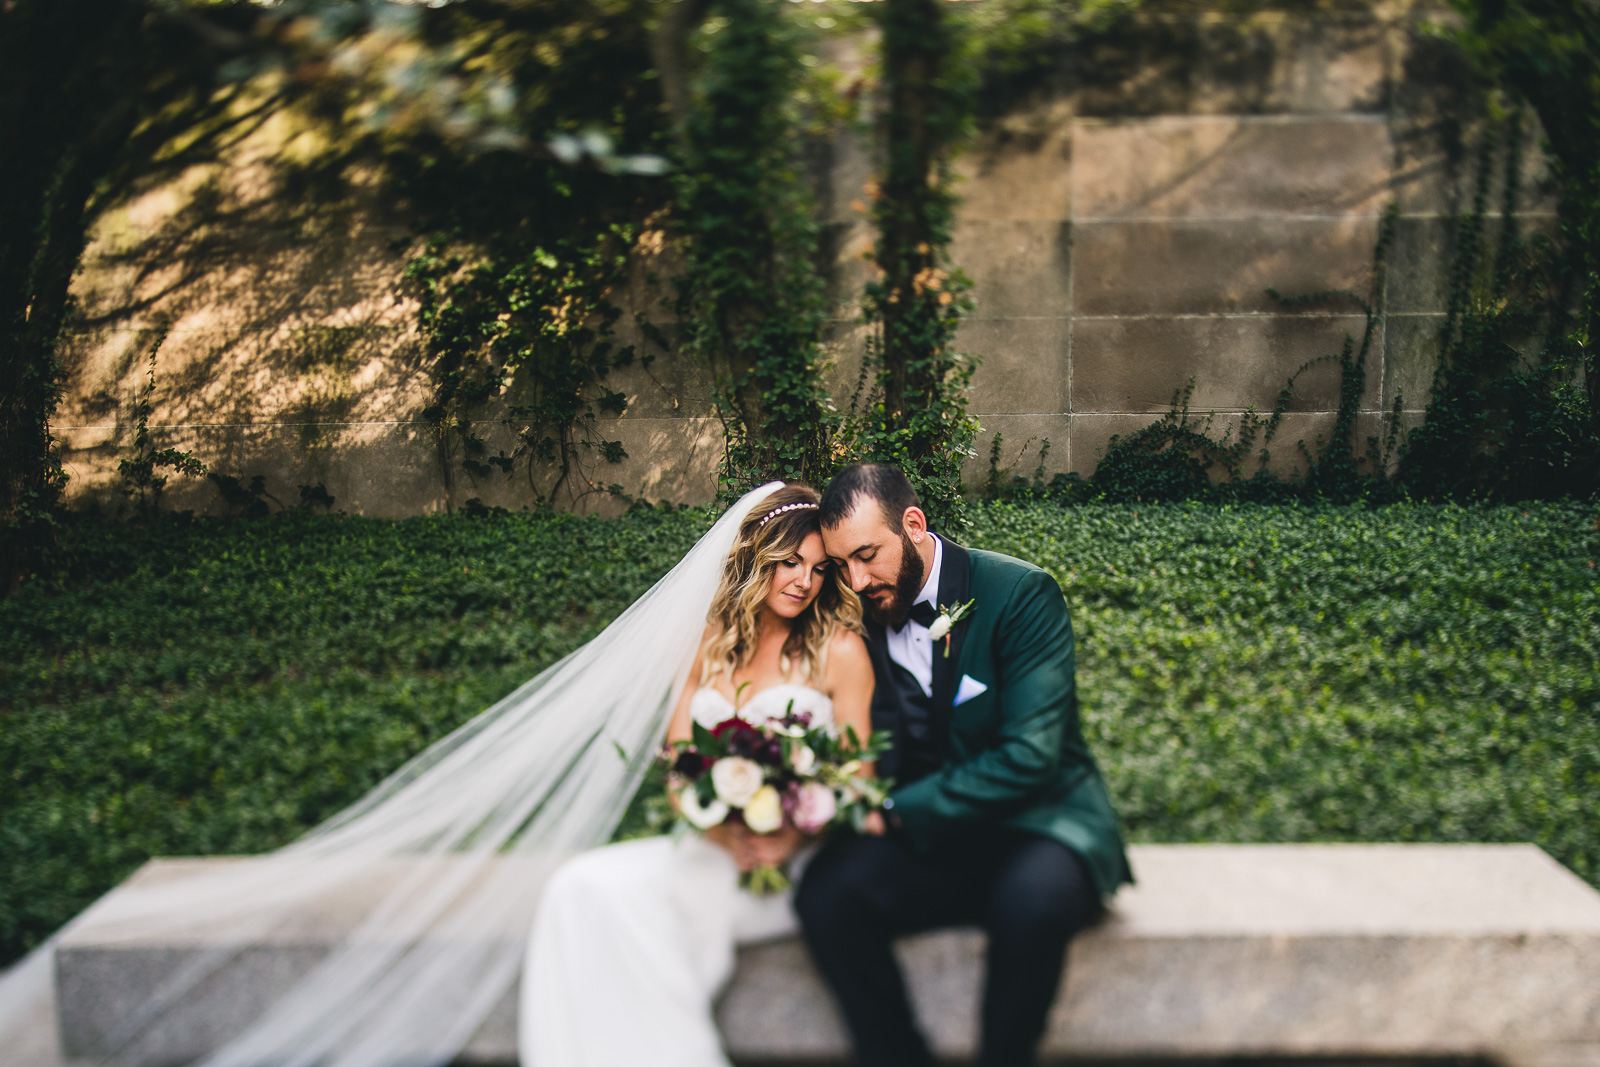 106 chicago wedding photographer best portraits during weddings review - 2018 in Review // My Favorite Chicago Wedding Photography Portraits